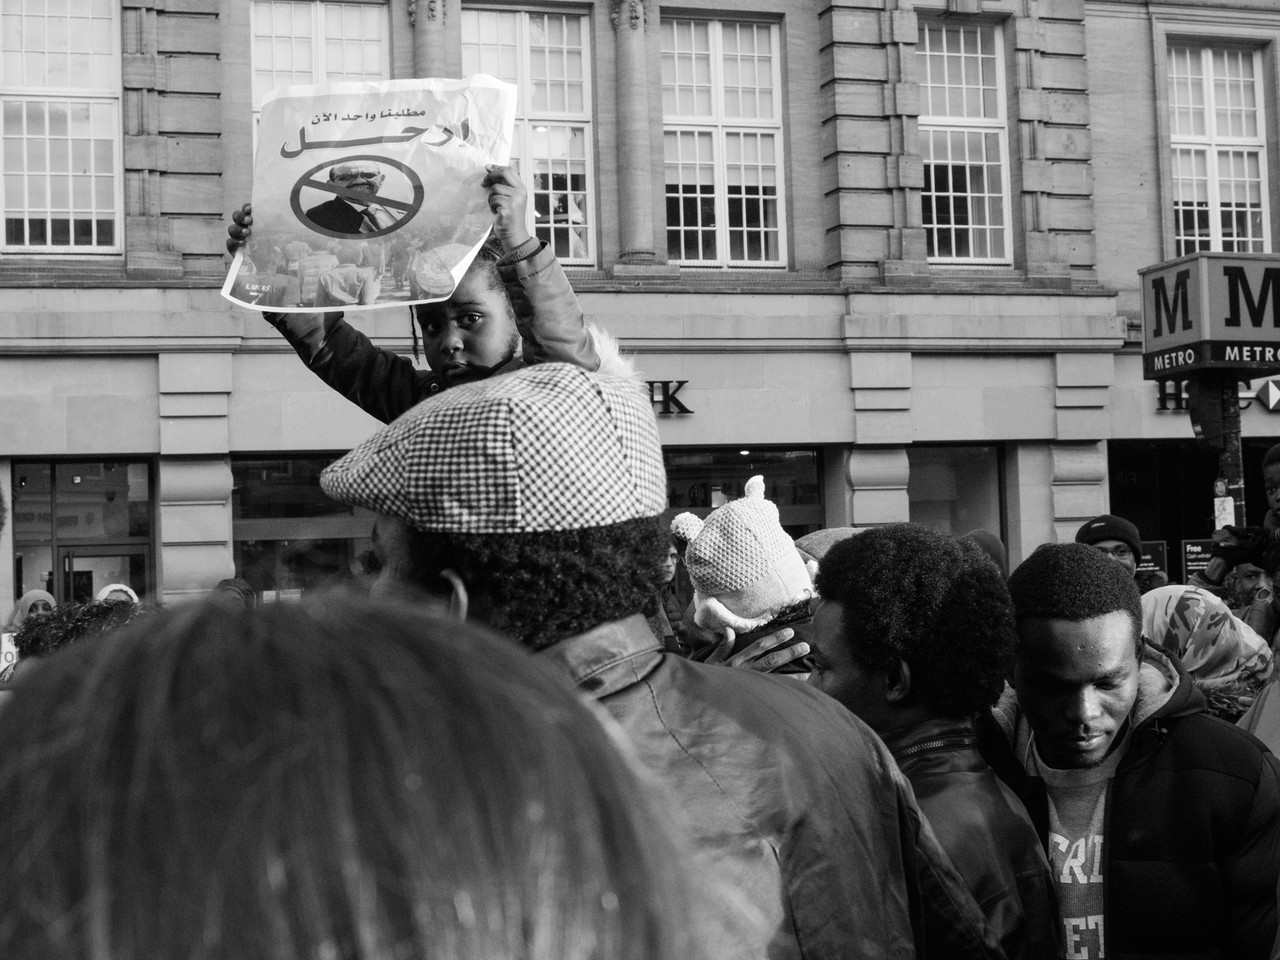 Child protests at #sudan-revolts Newcastle Upon Tyne Street Photography